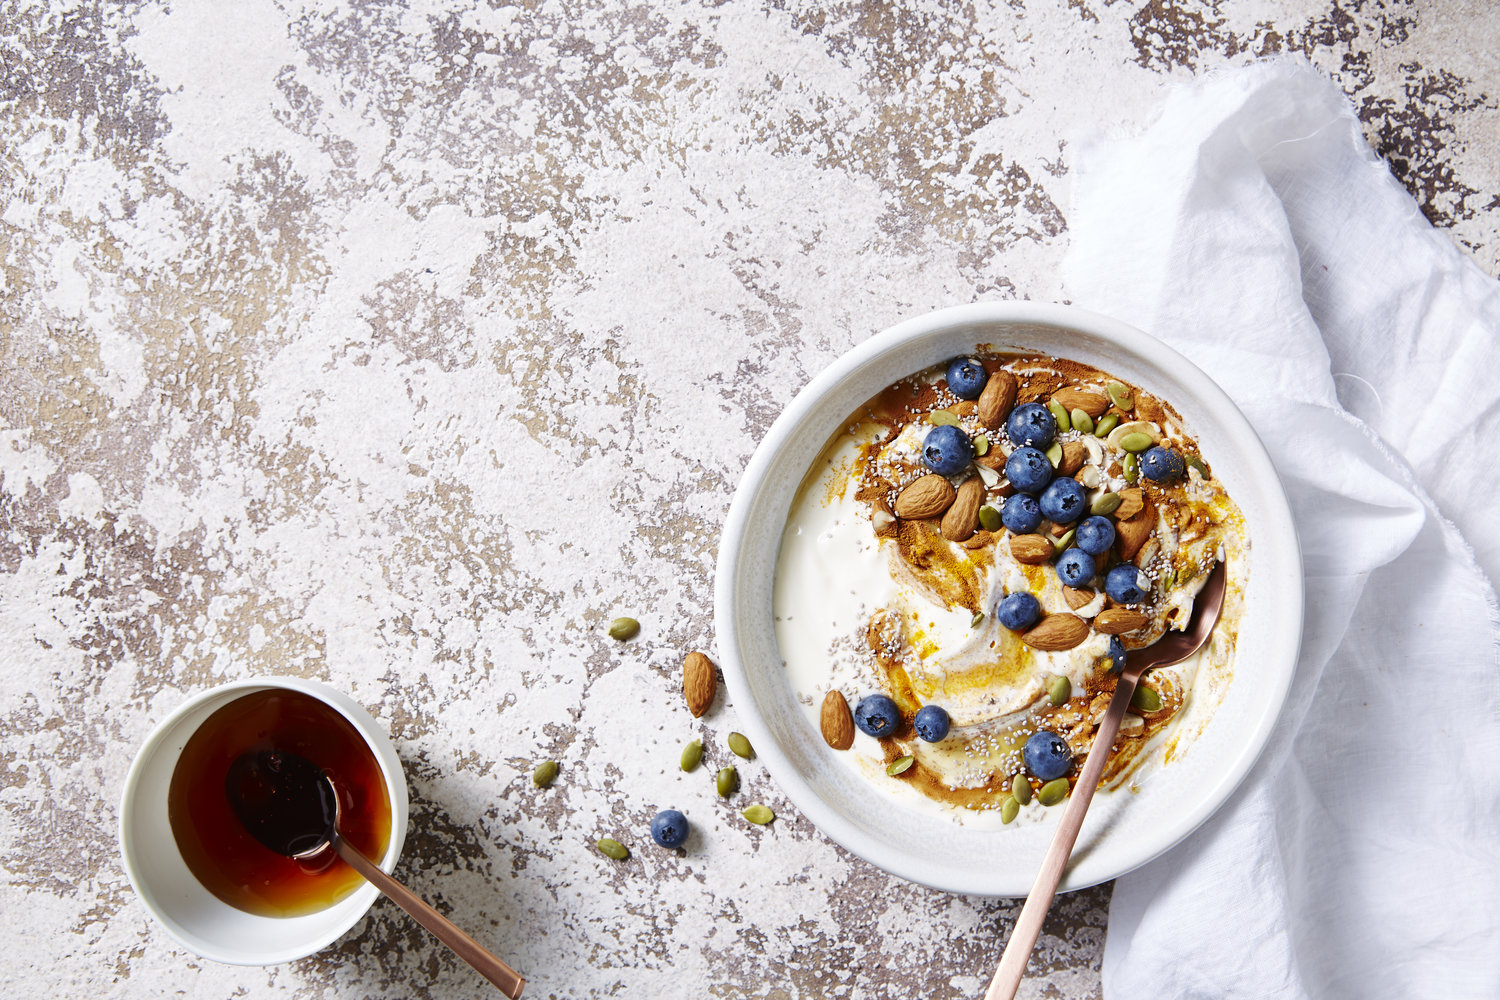 Golden Turmeric Breakfast Bowl. I Quit Sugar. Photographer: Ella Martin. Stylist: Gemma Lush.